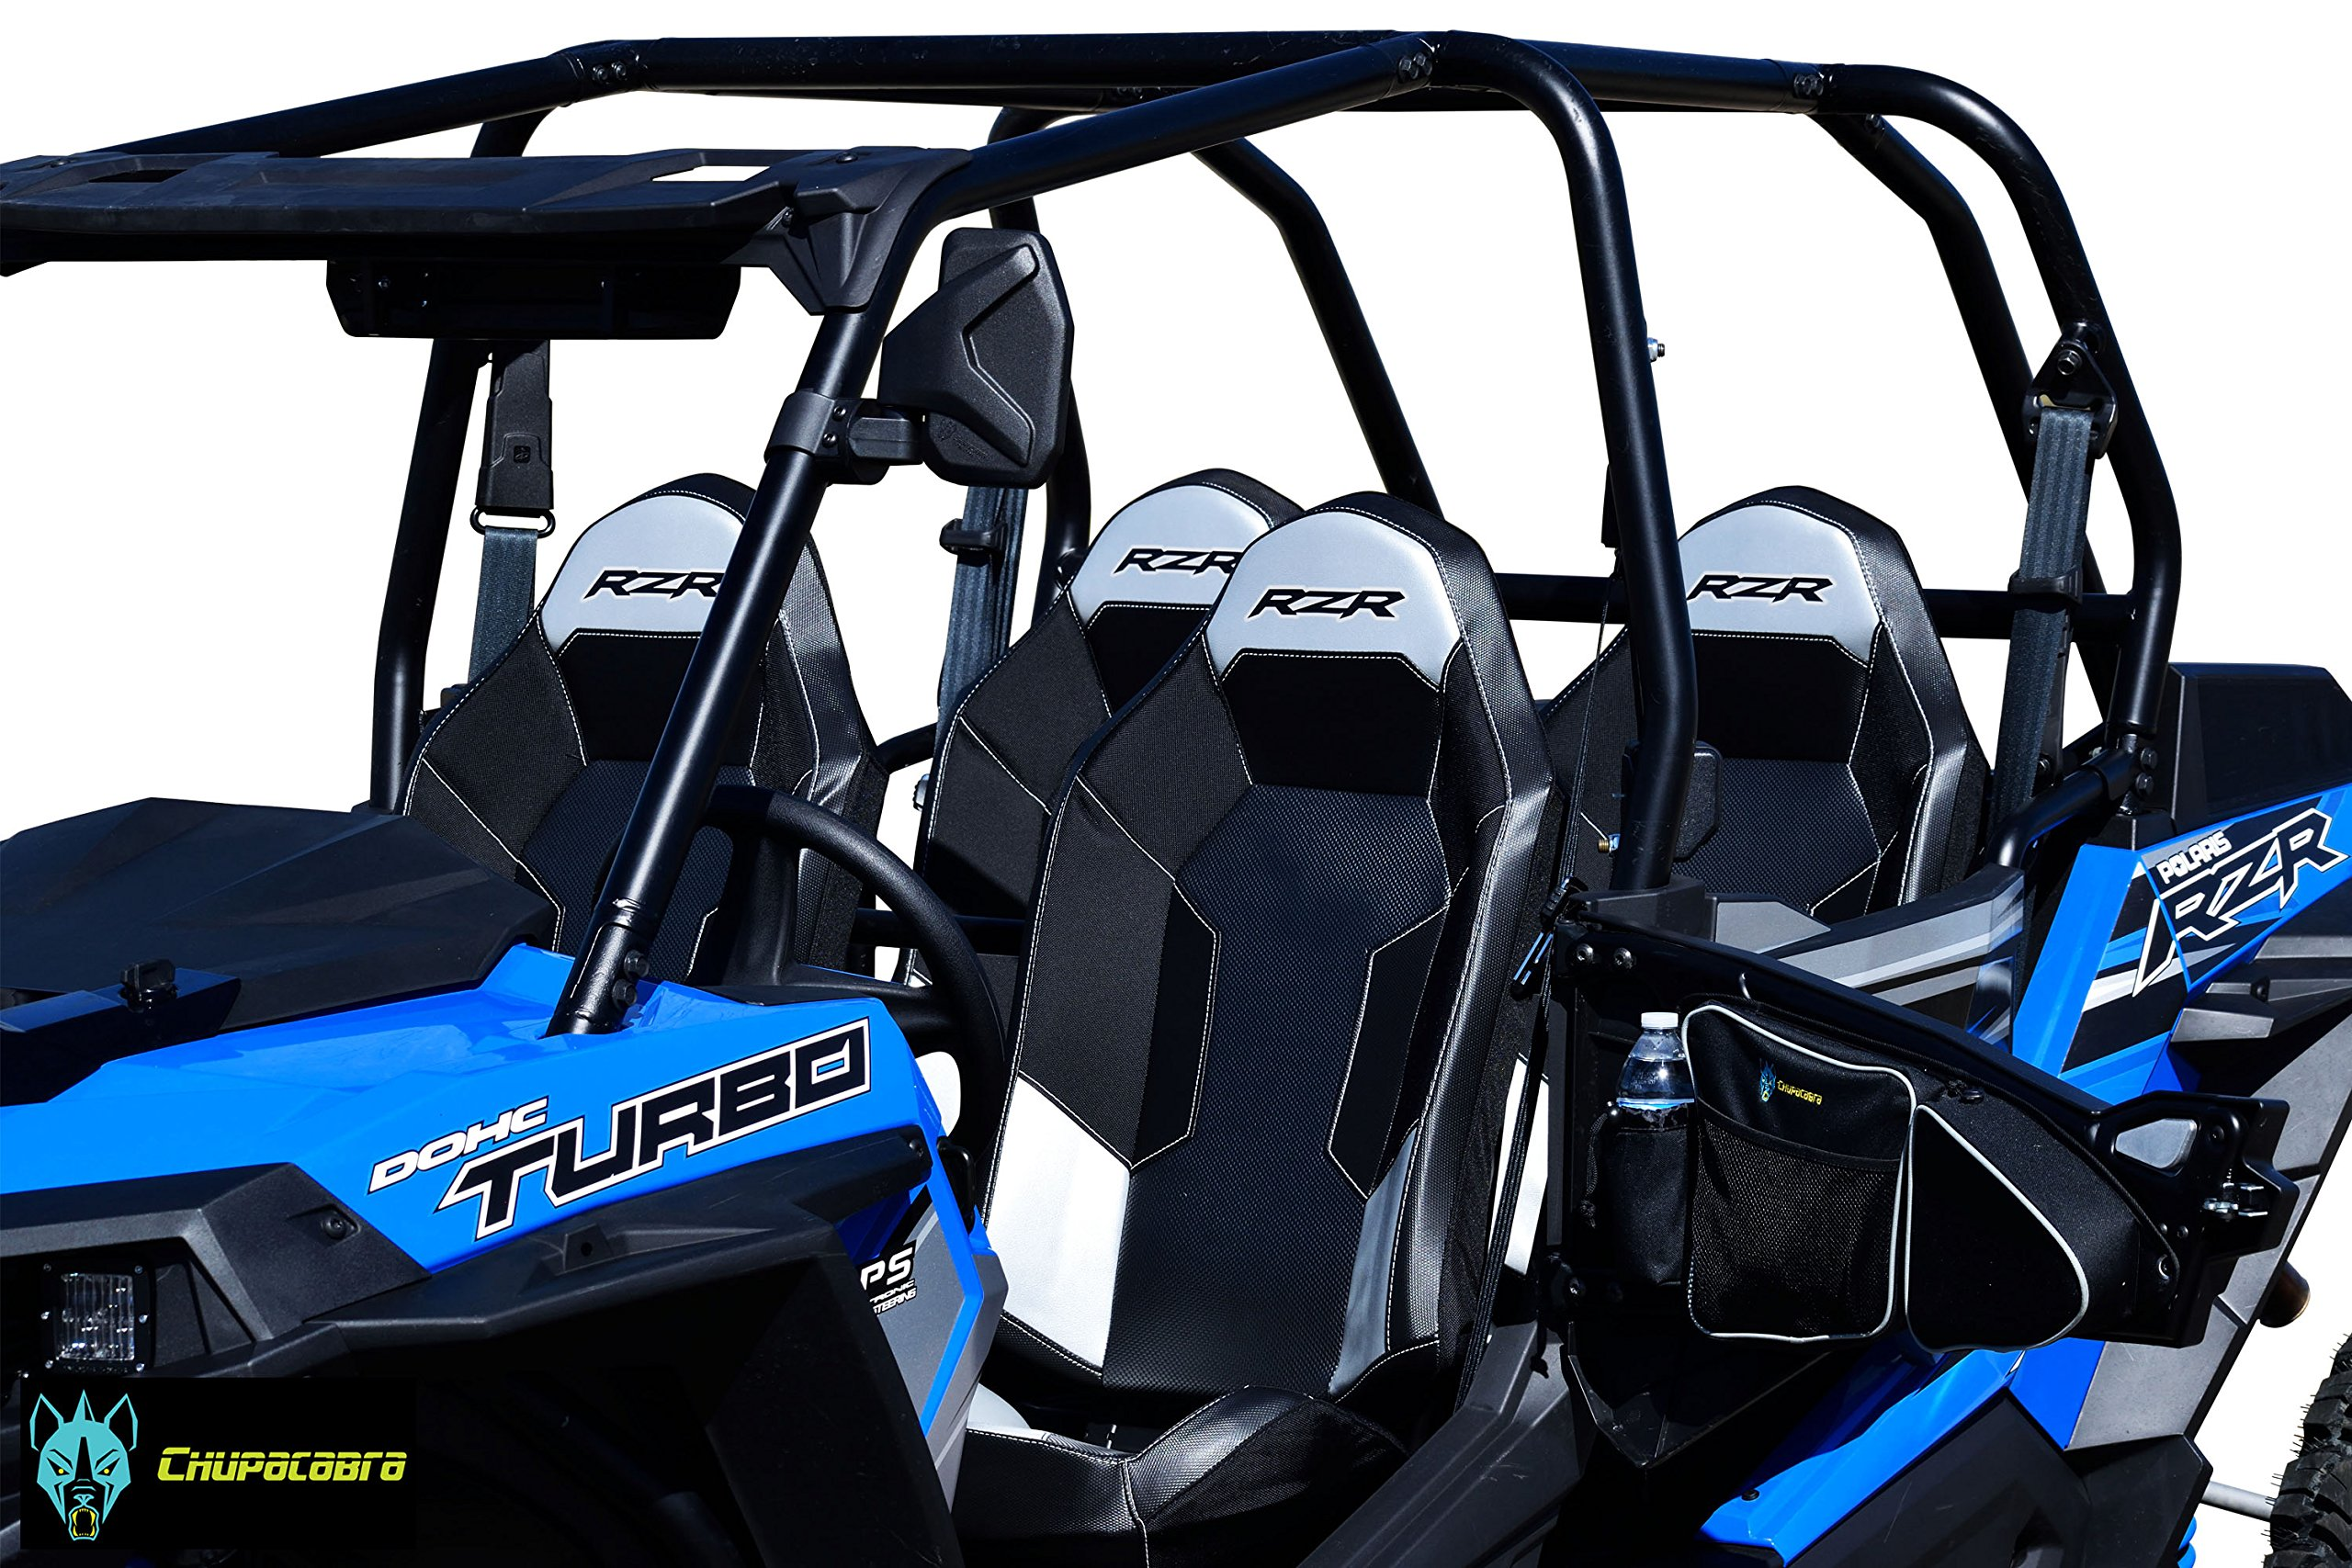 Chupacabra Offroad Door Bags RZR Turbo 1000 900S Passenger and Driver Side Storage Bag by Chupacabra Offroad (Image #7)